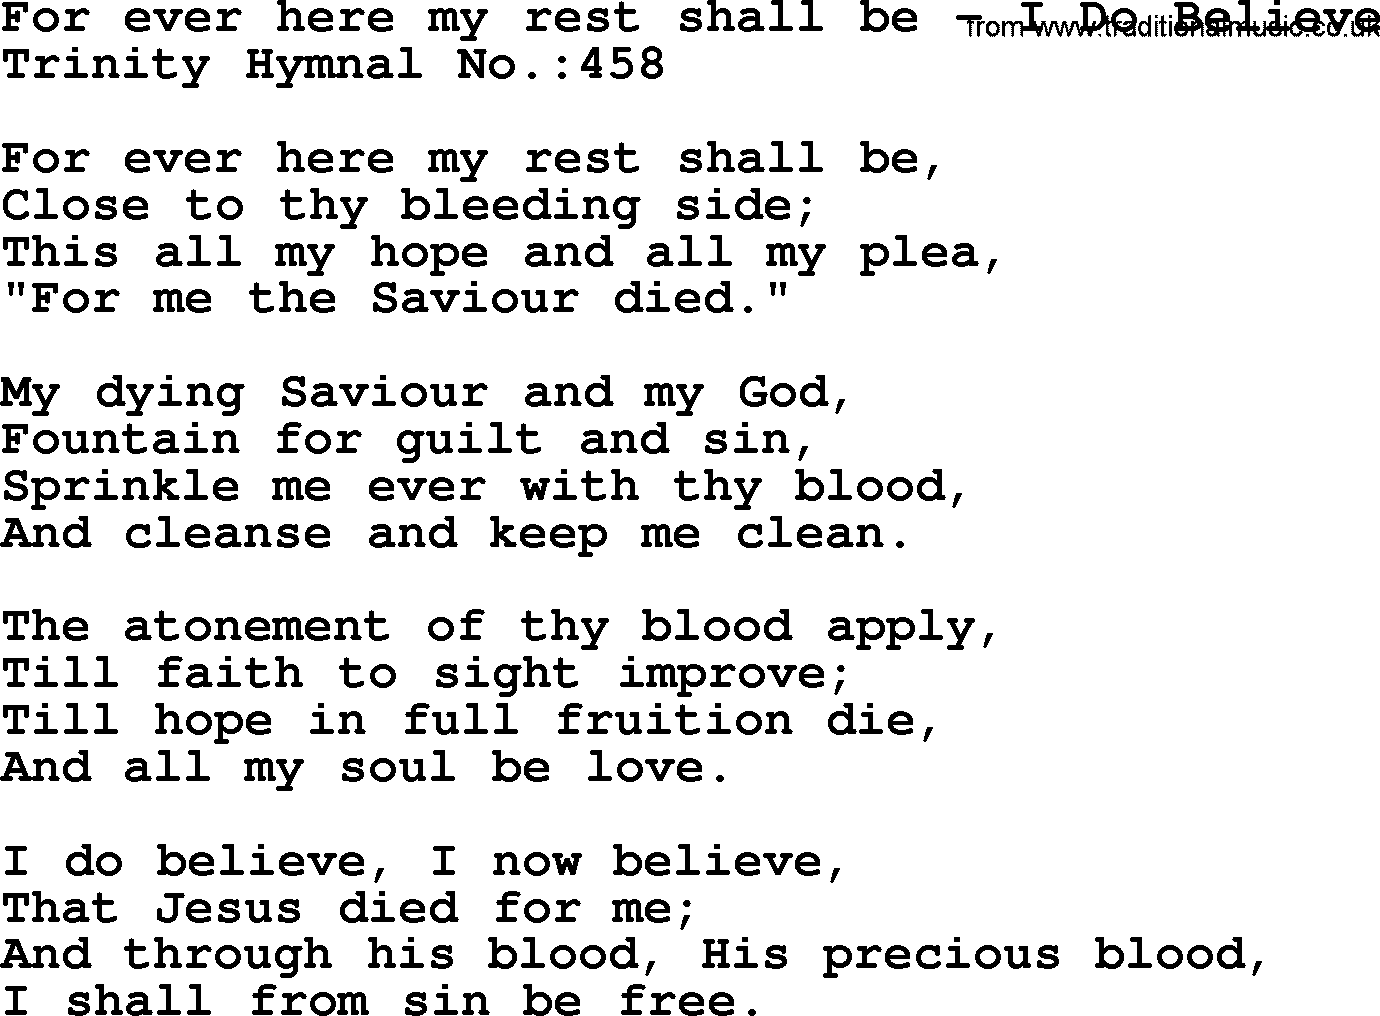 Trinity Hymnal Hymn: For Ever Here My Rest Shall Be--I Do